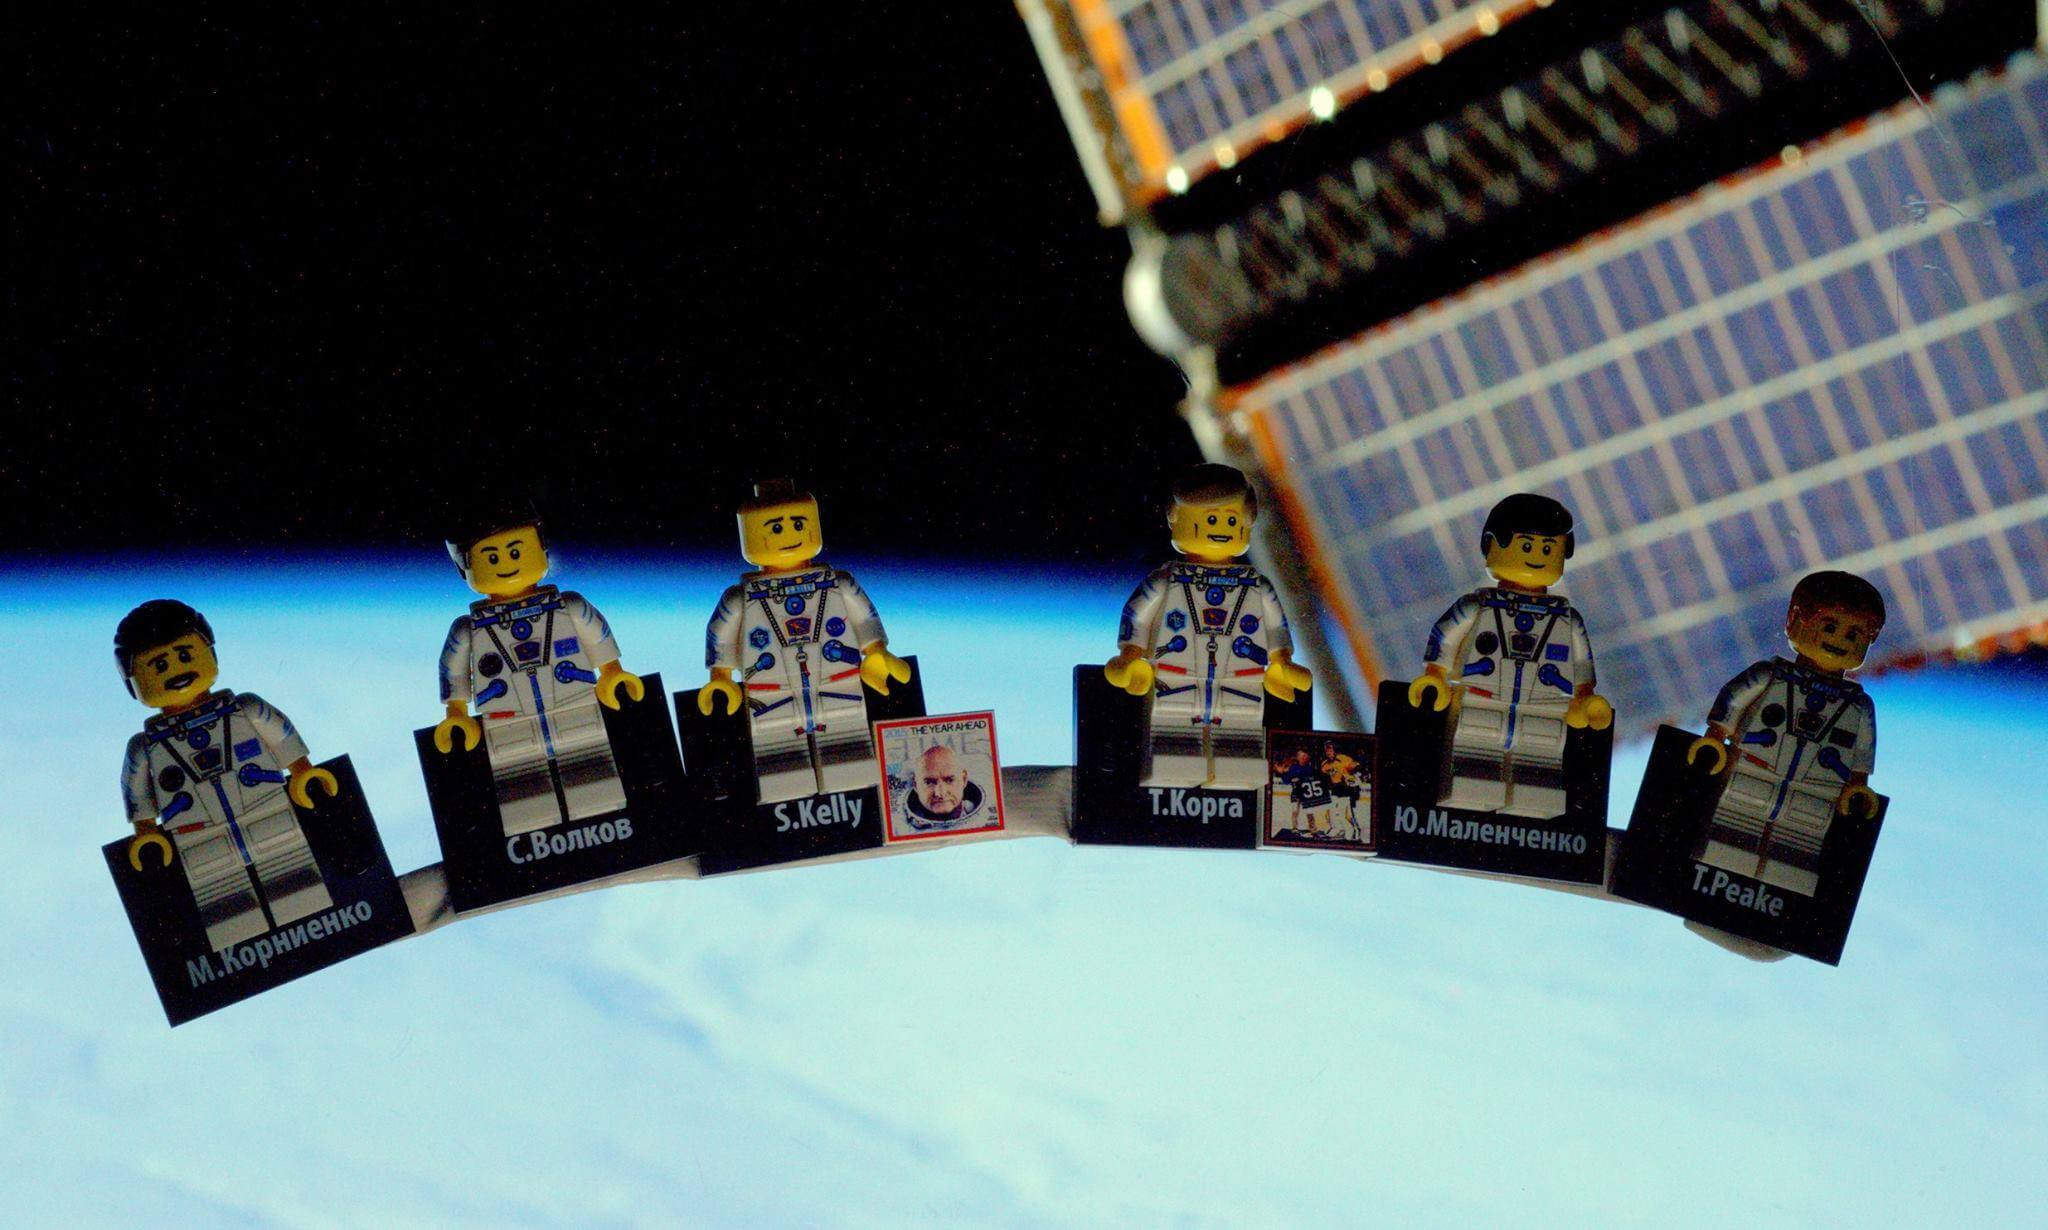 Tim Peake's fellow crew in minifigure form, pictured against a window in the ISS